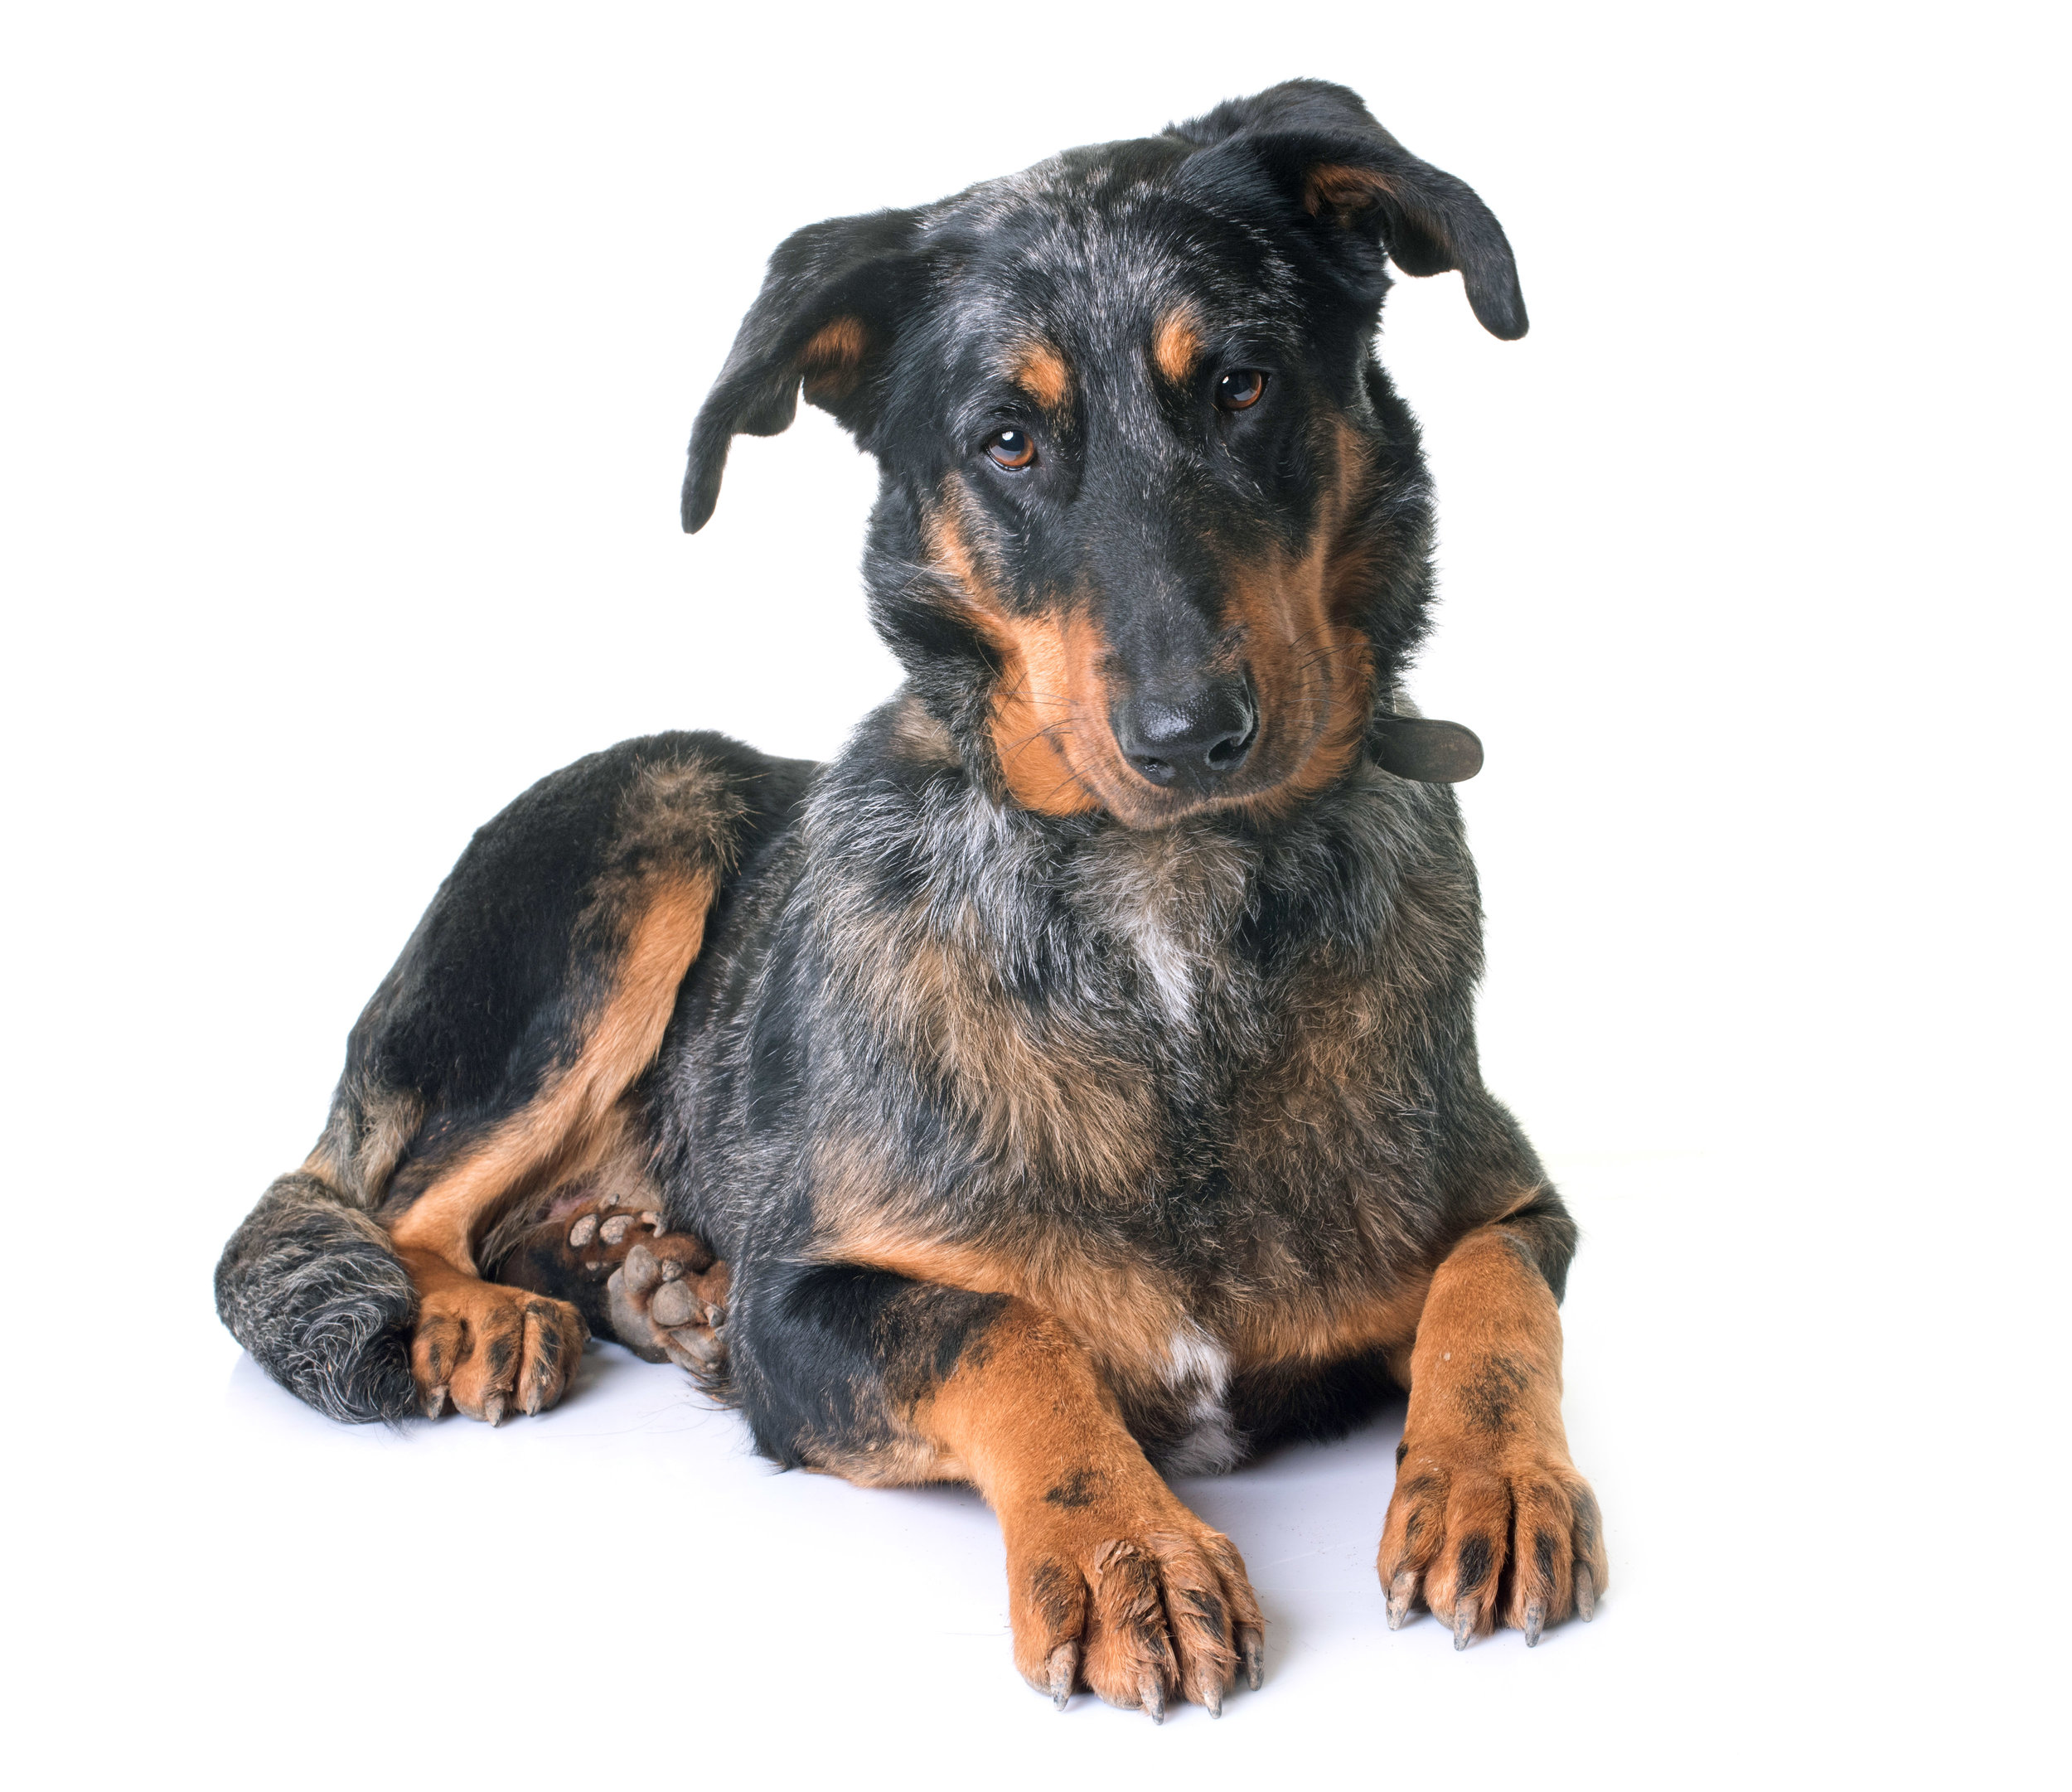 beauceron-dog-in-studio-PK94EY2.jpg